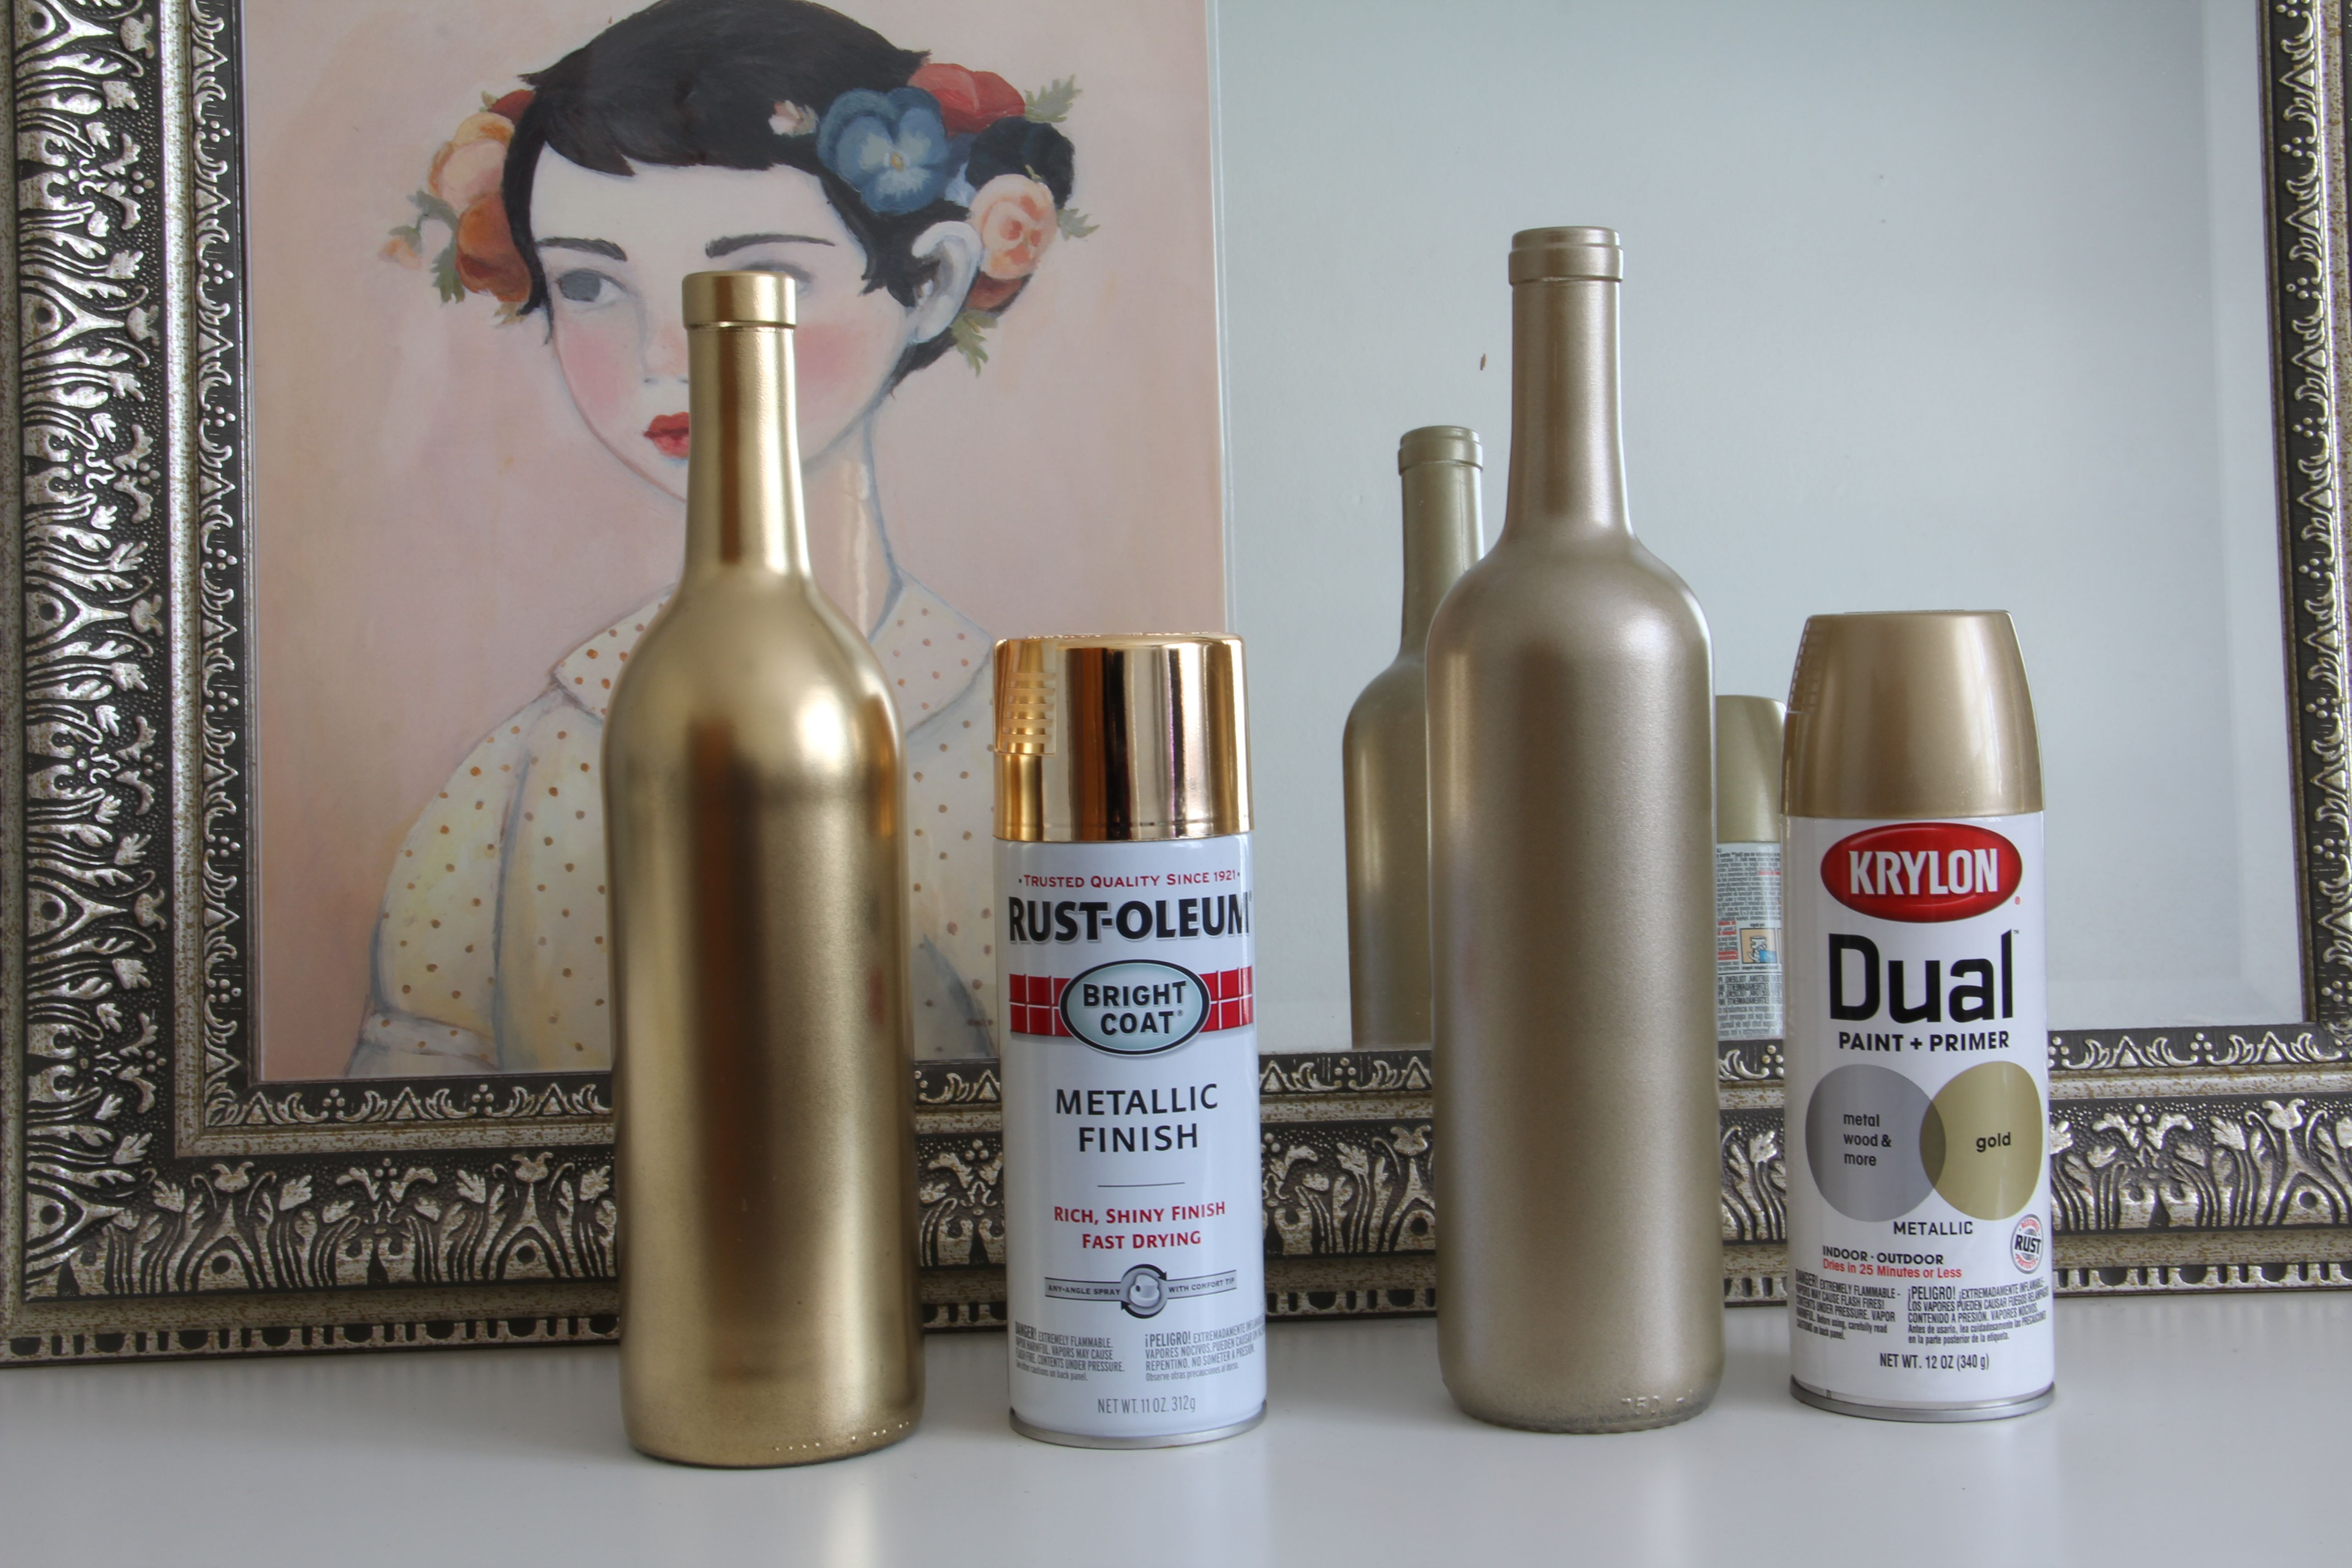 Wedding decorations with wine bottles  gold champagne golds spay paint wine bottles  Google Search